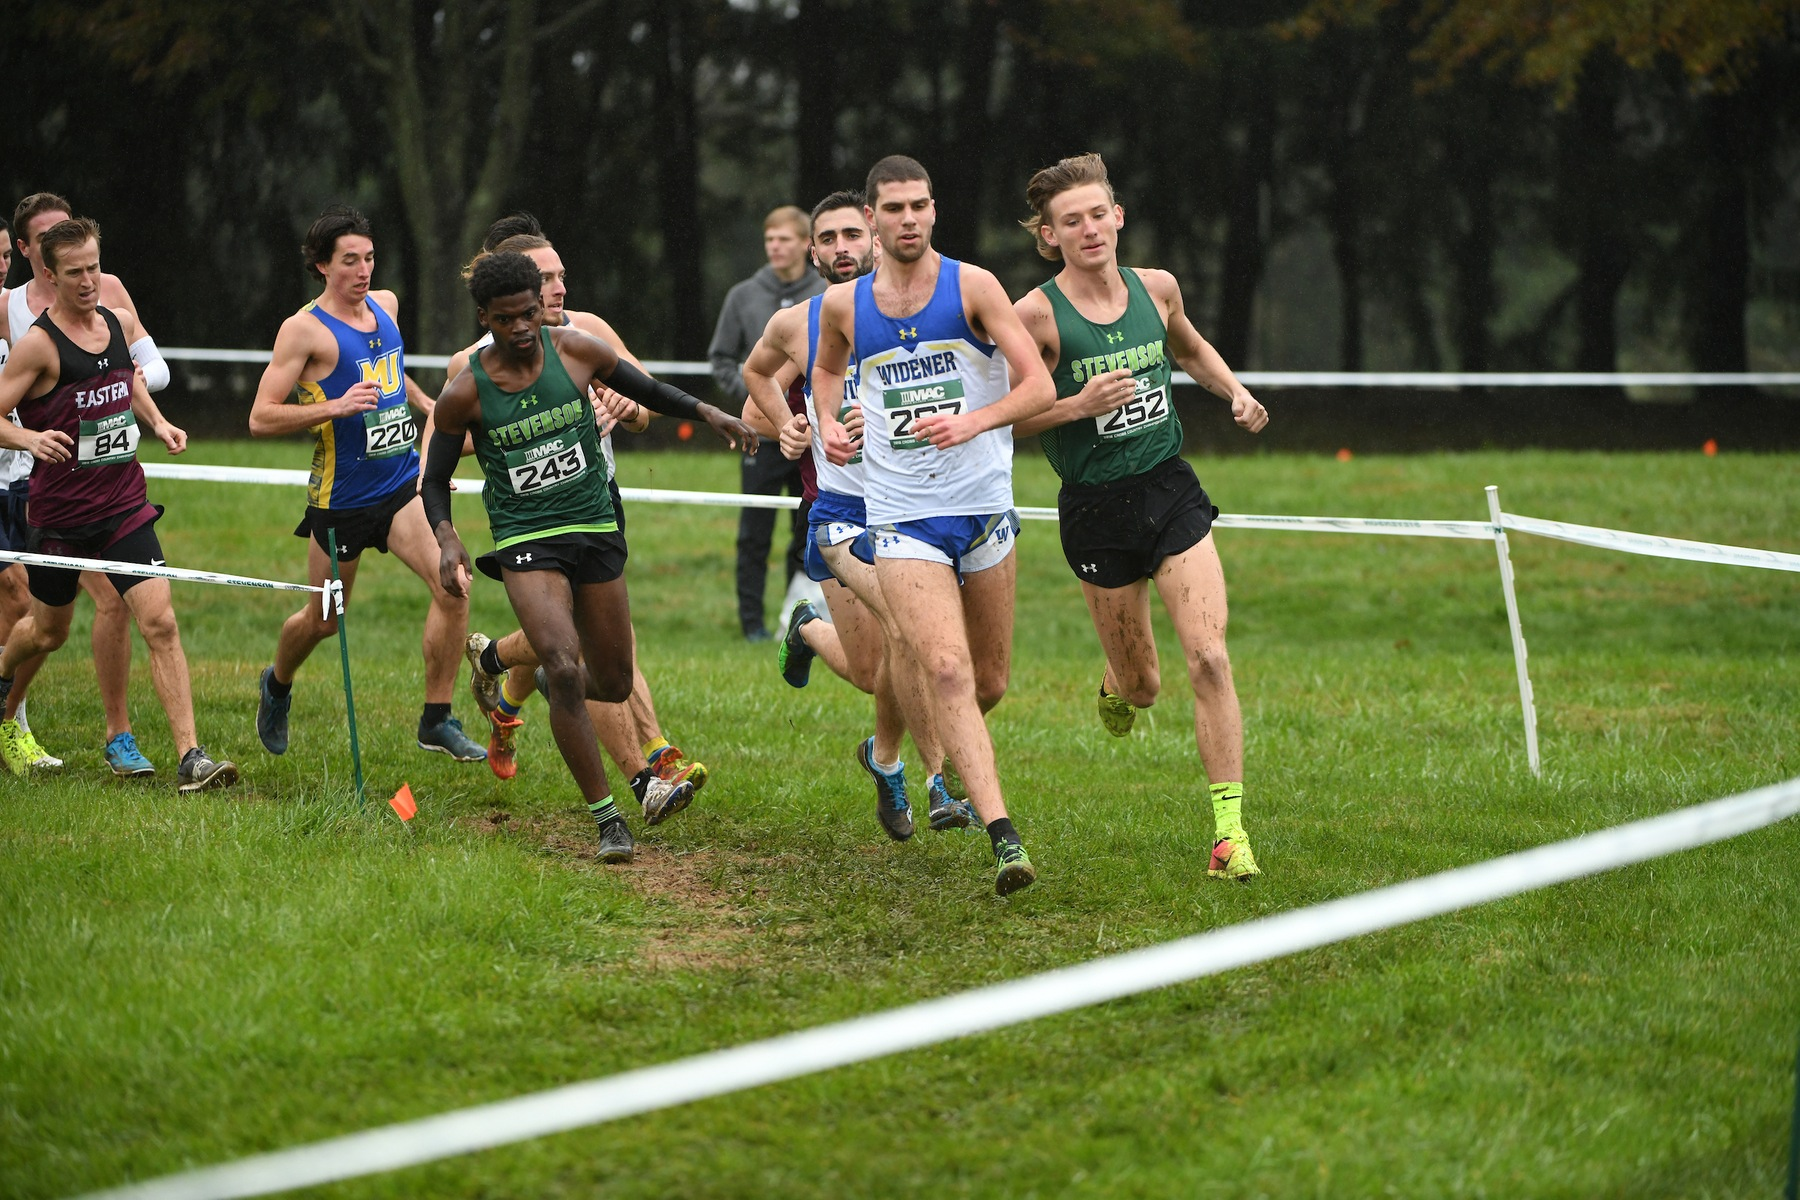 Watson Takes Fourth at Mount St. Mary's 5K Duals